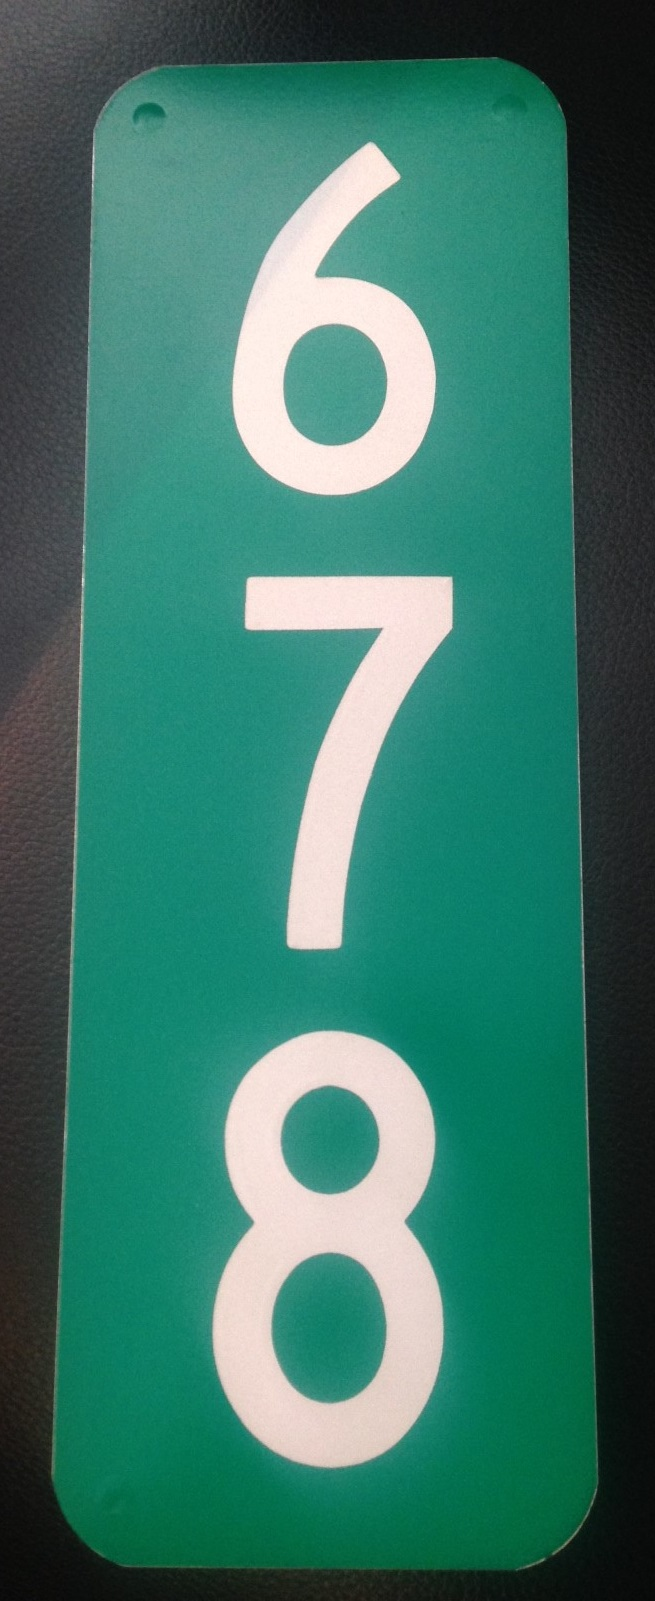 9 1 1 Reflective Address Signs Grand County Wildfire Council